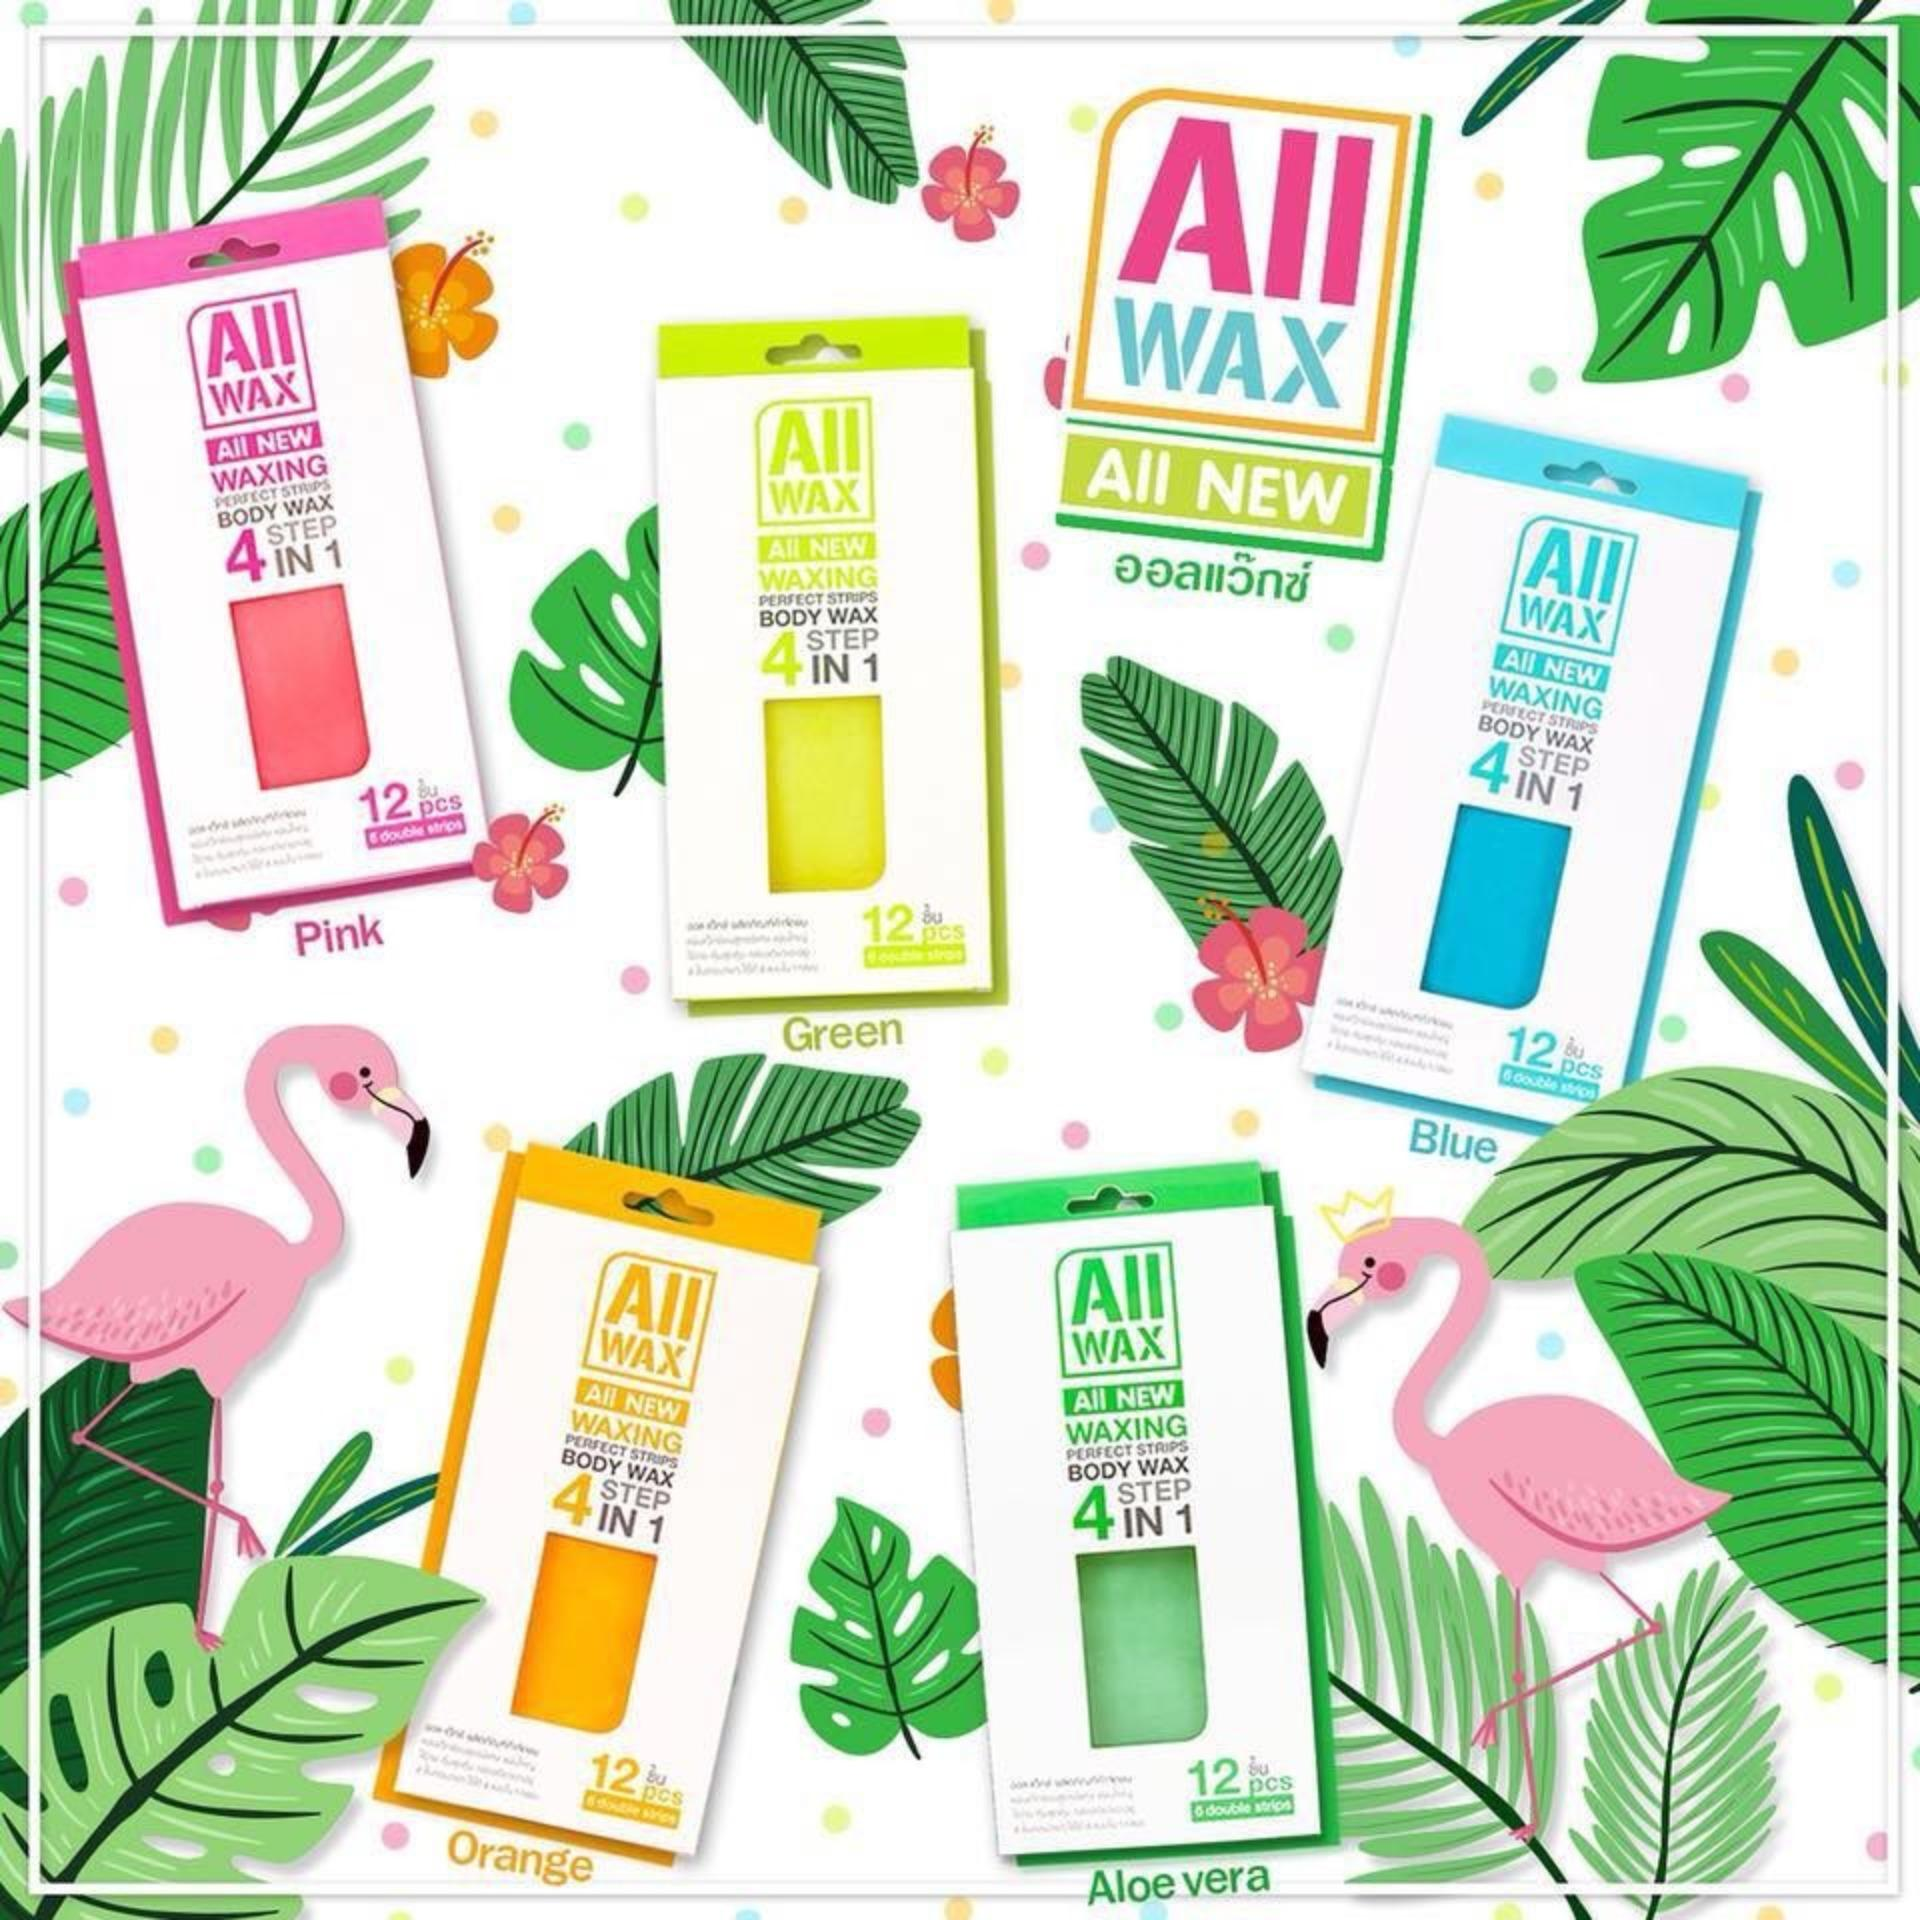 Wax lông dạng miếng All Wax All New Perfect Strips Body Wax 4 Step In 1 cao cấp